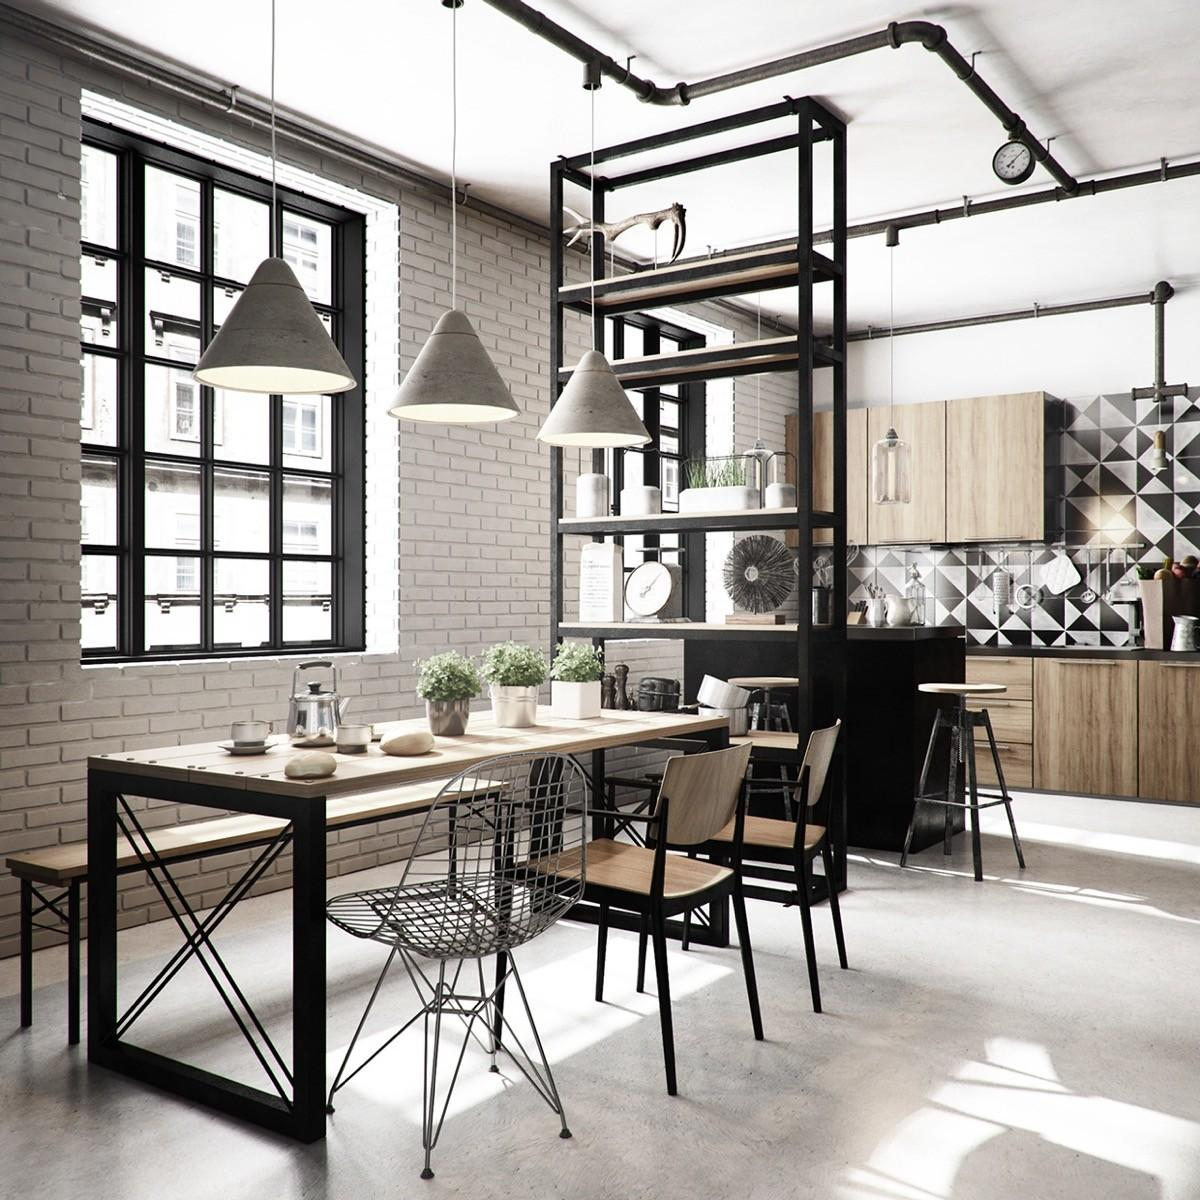 Industrial Style Dining Room Design Essential Guide Decoratorist 62635